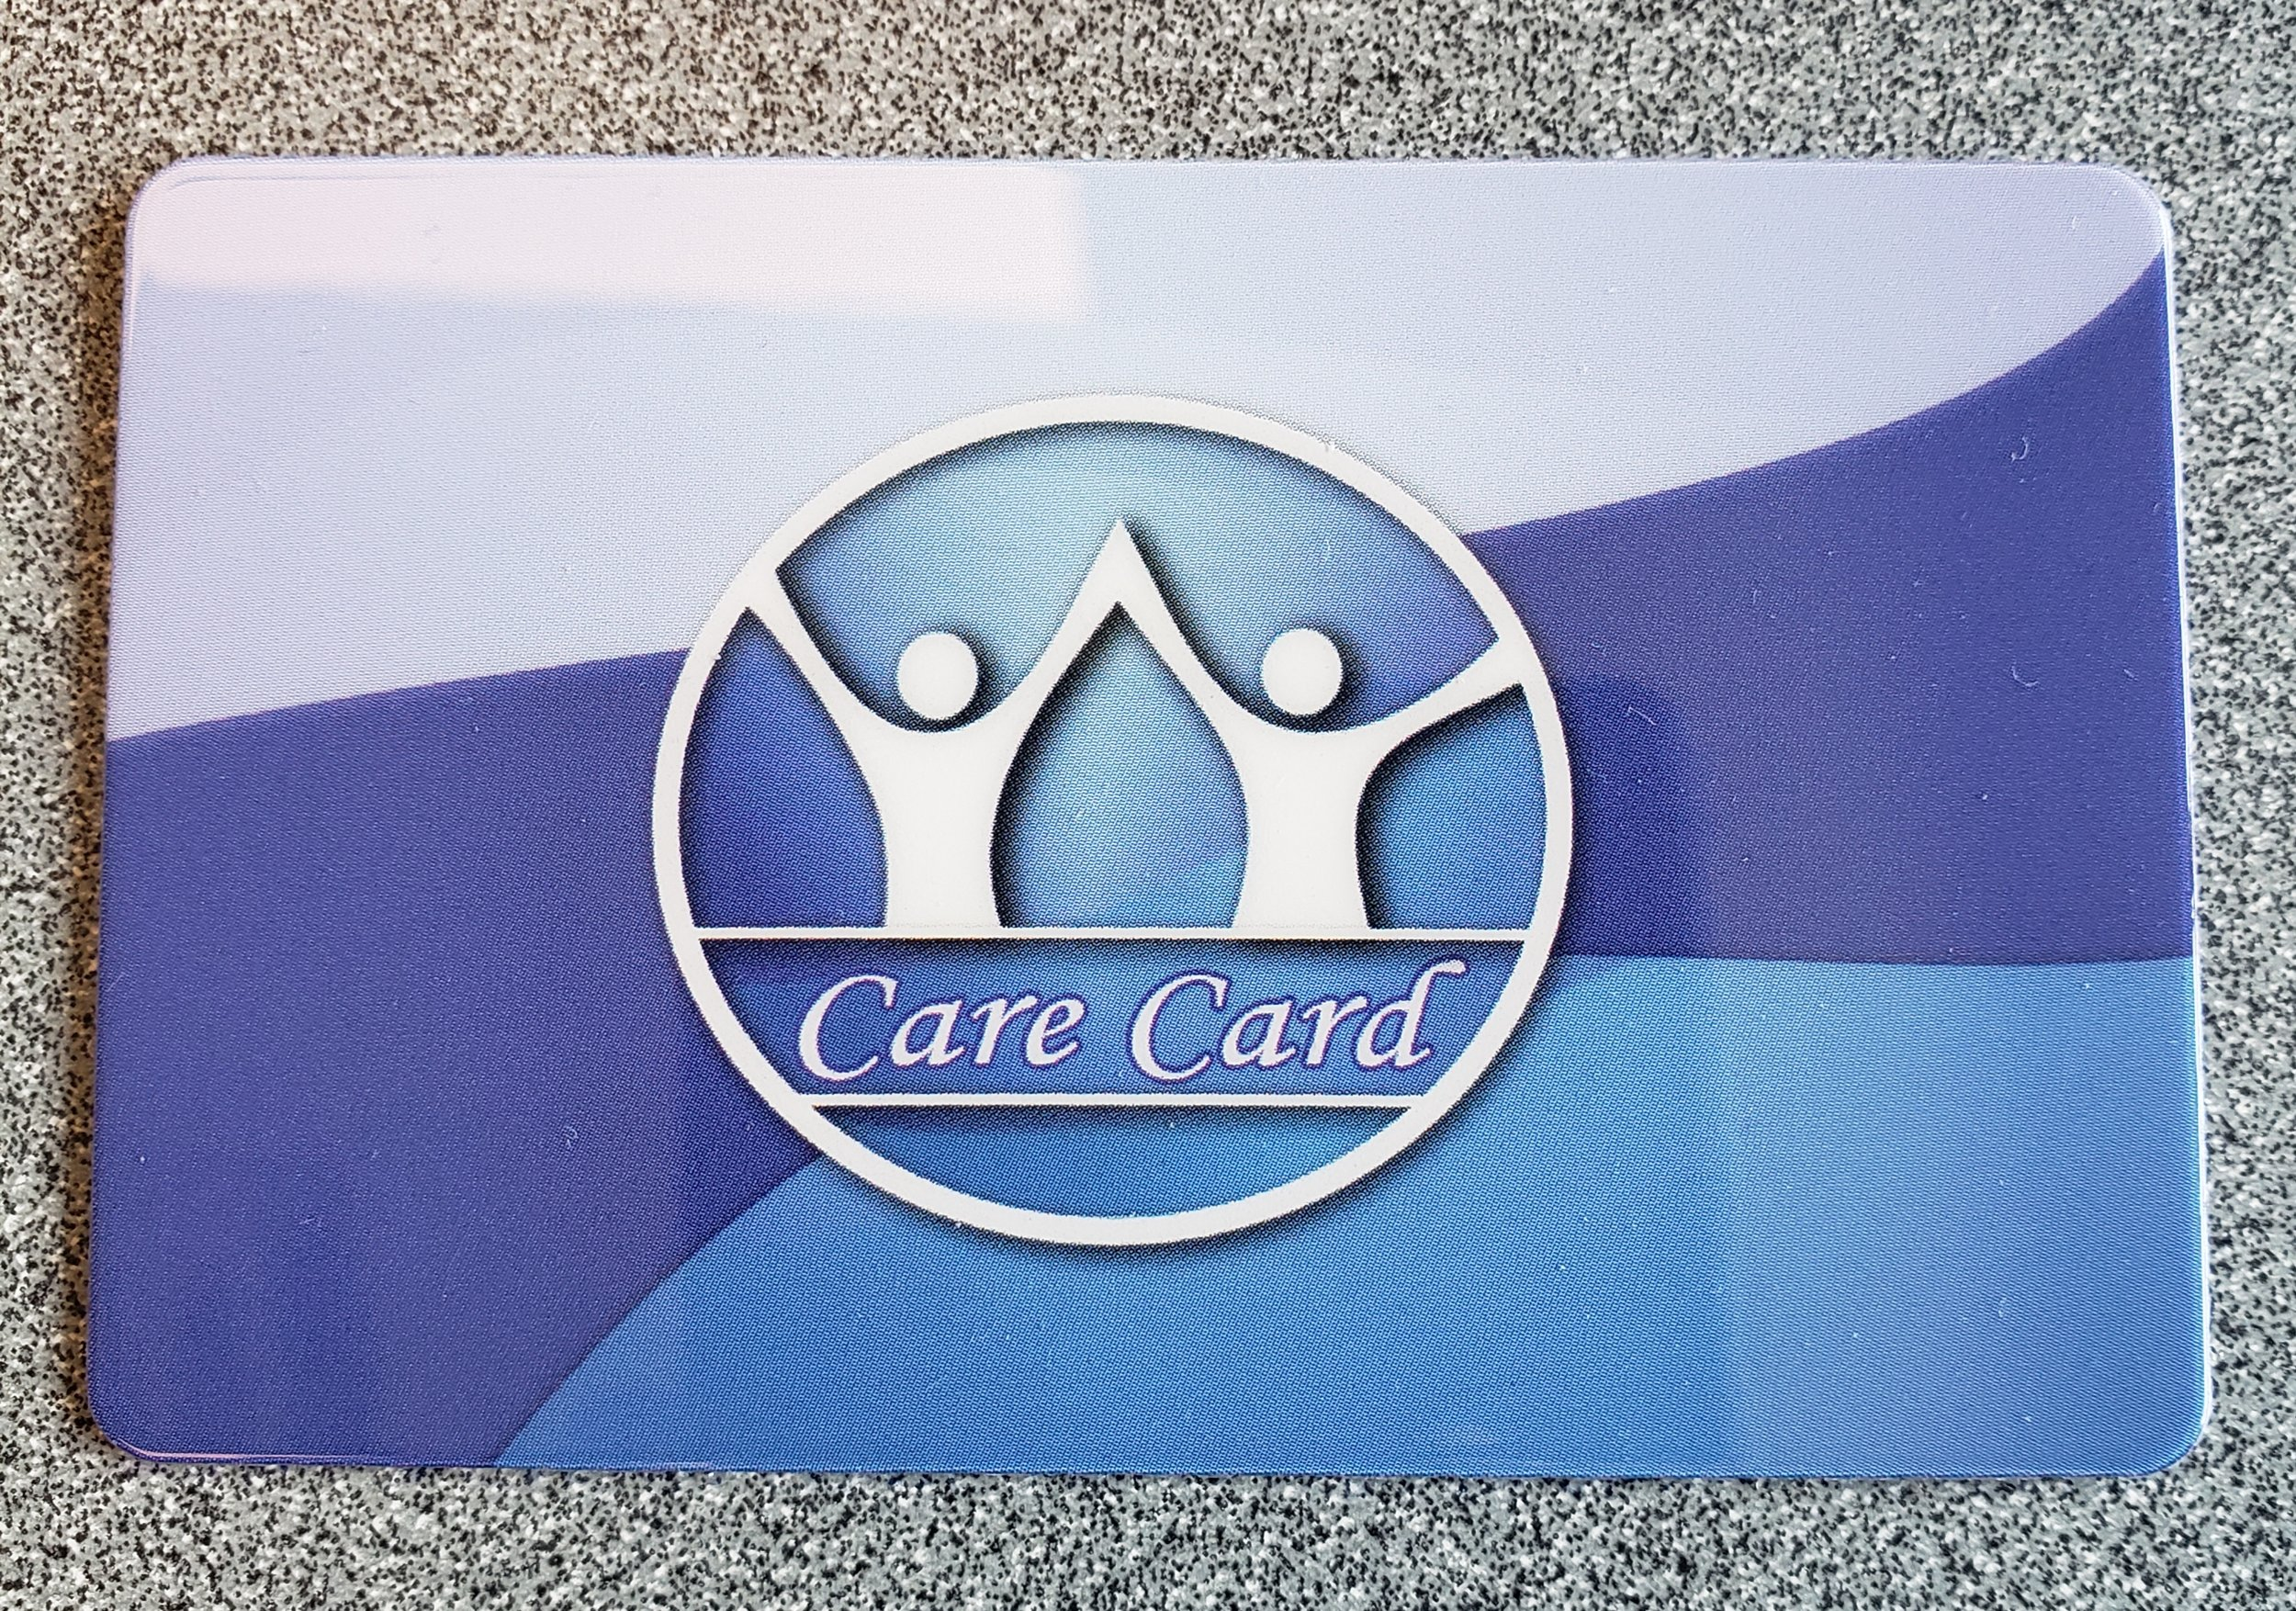 Care Cards - Common questions and answers